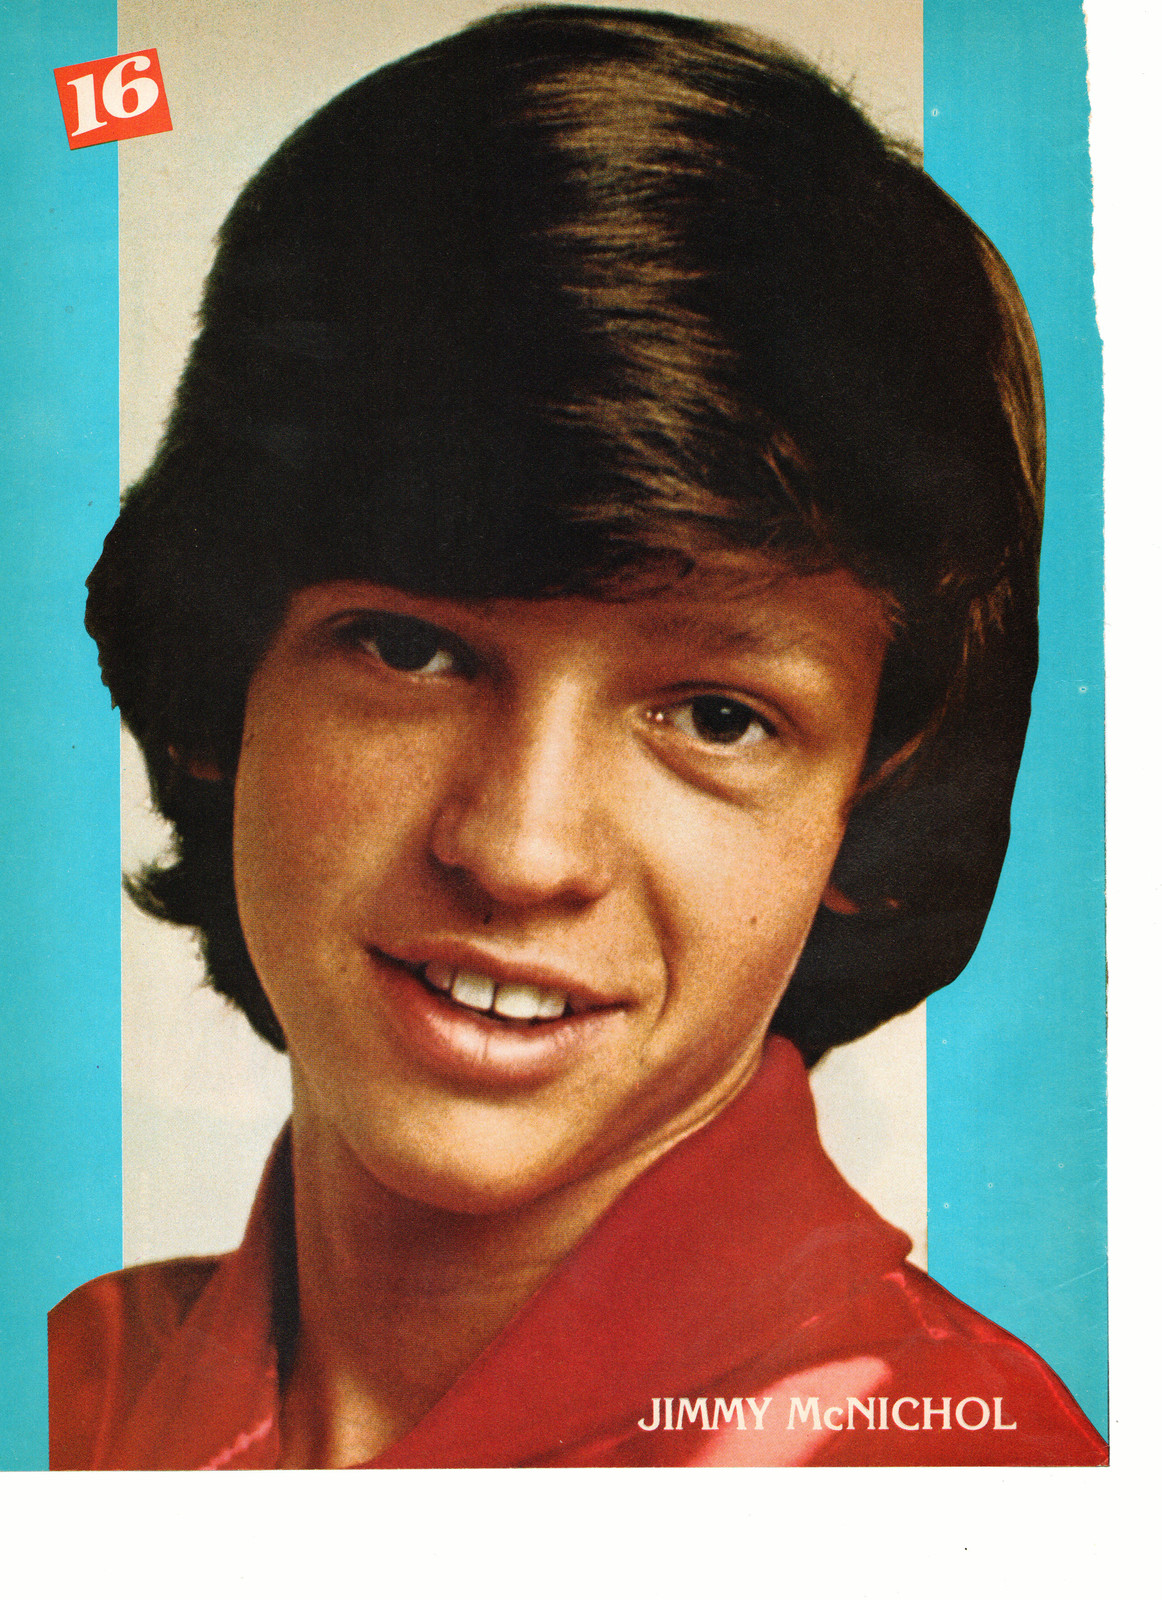 Jimmy Mcnichol teen magazine pinup clipping close up red shirt confused